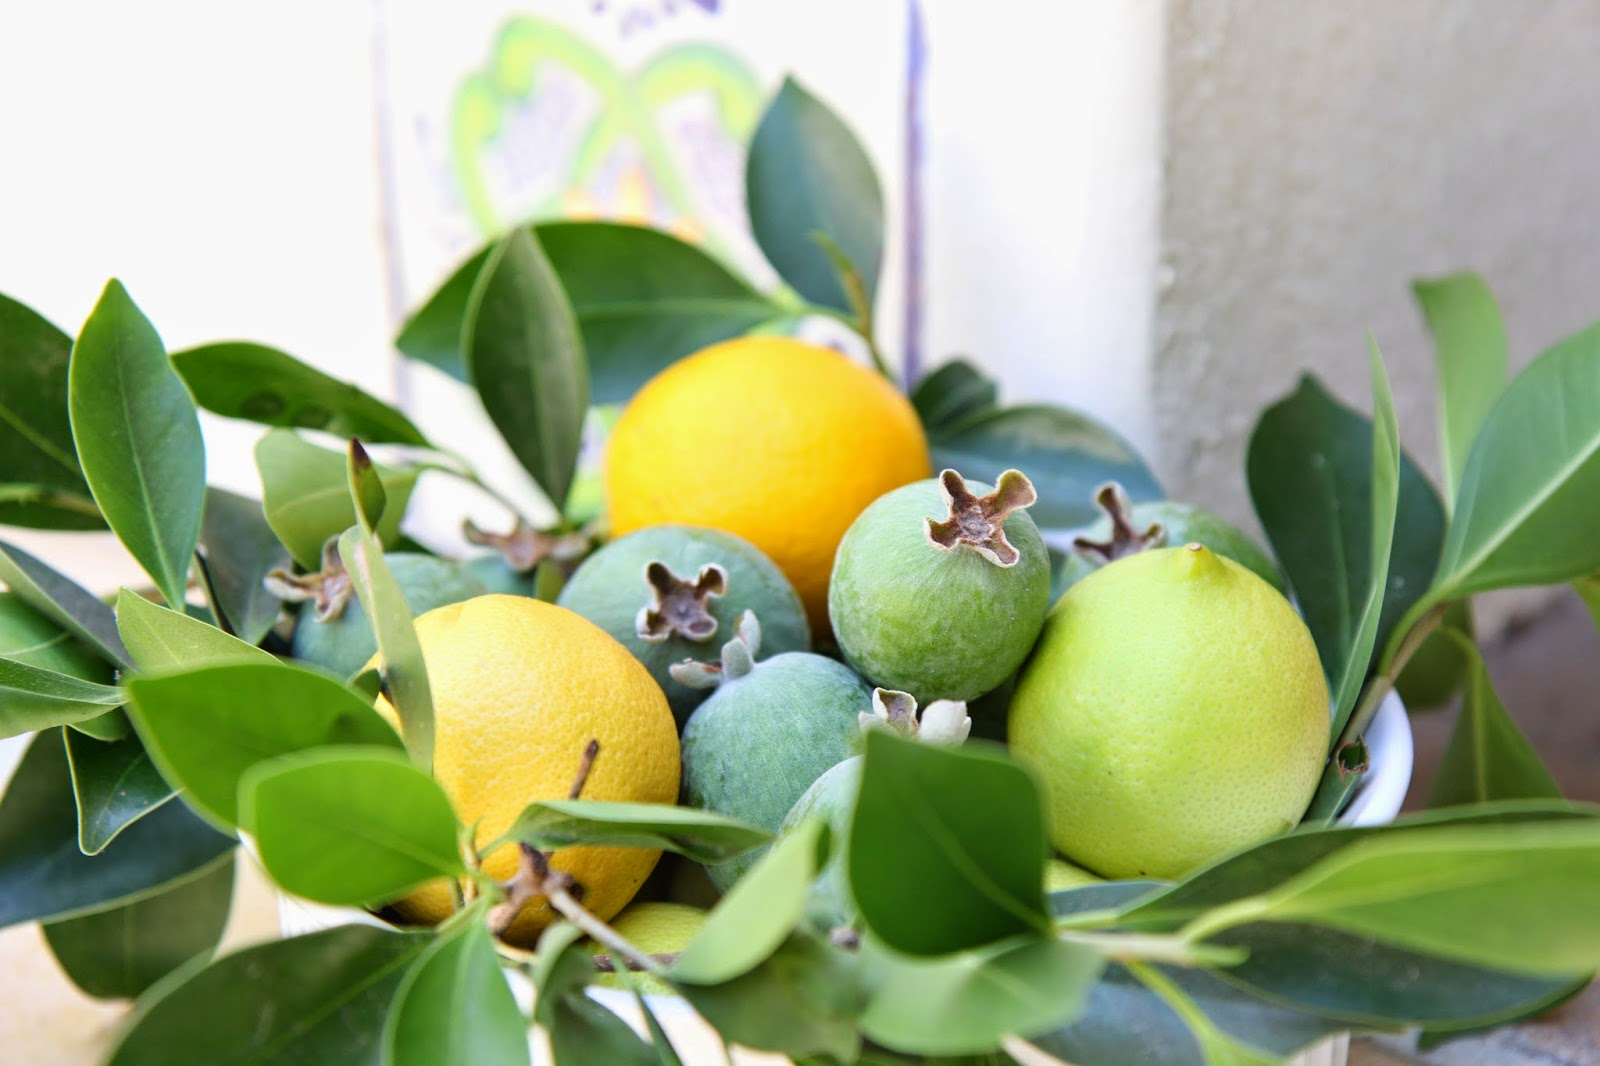 Yellows, greens, and blues: Simple Summer Fruit Bowl; Nora's Nest